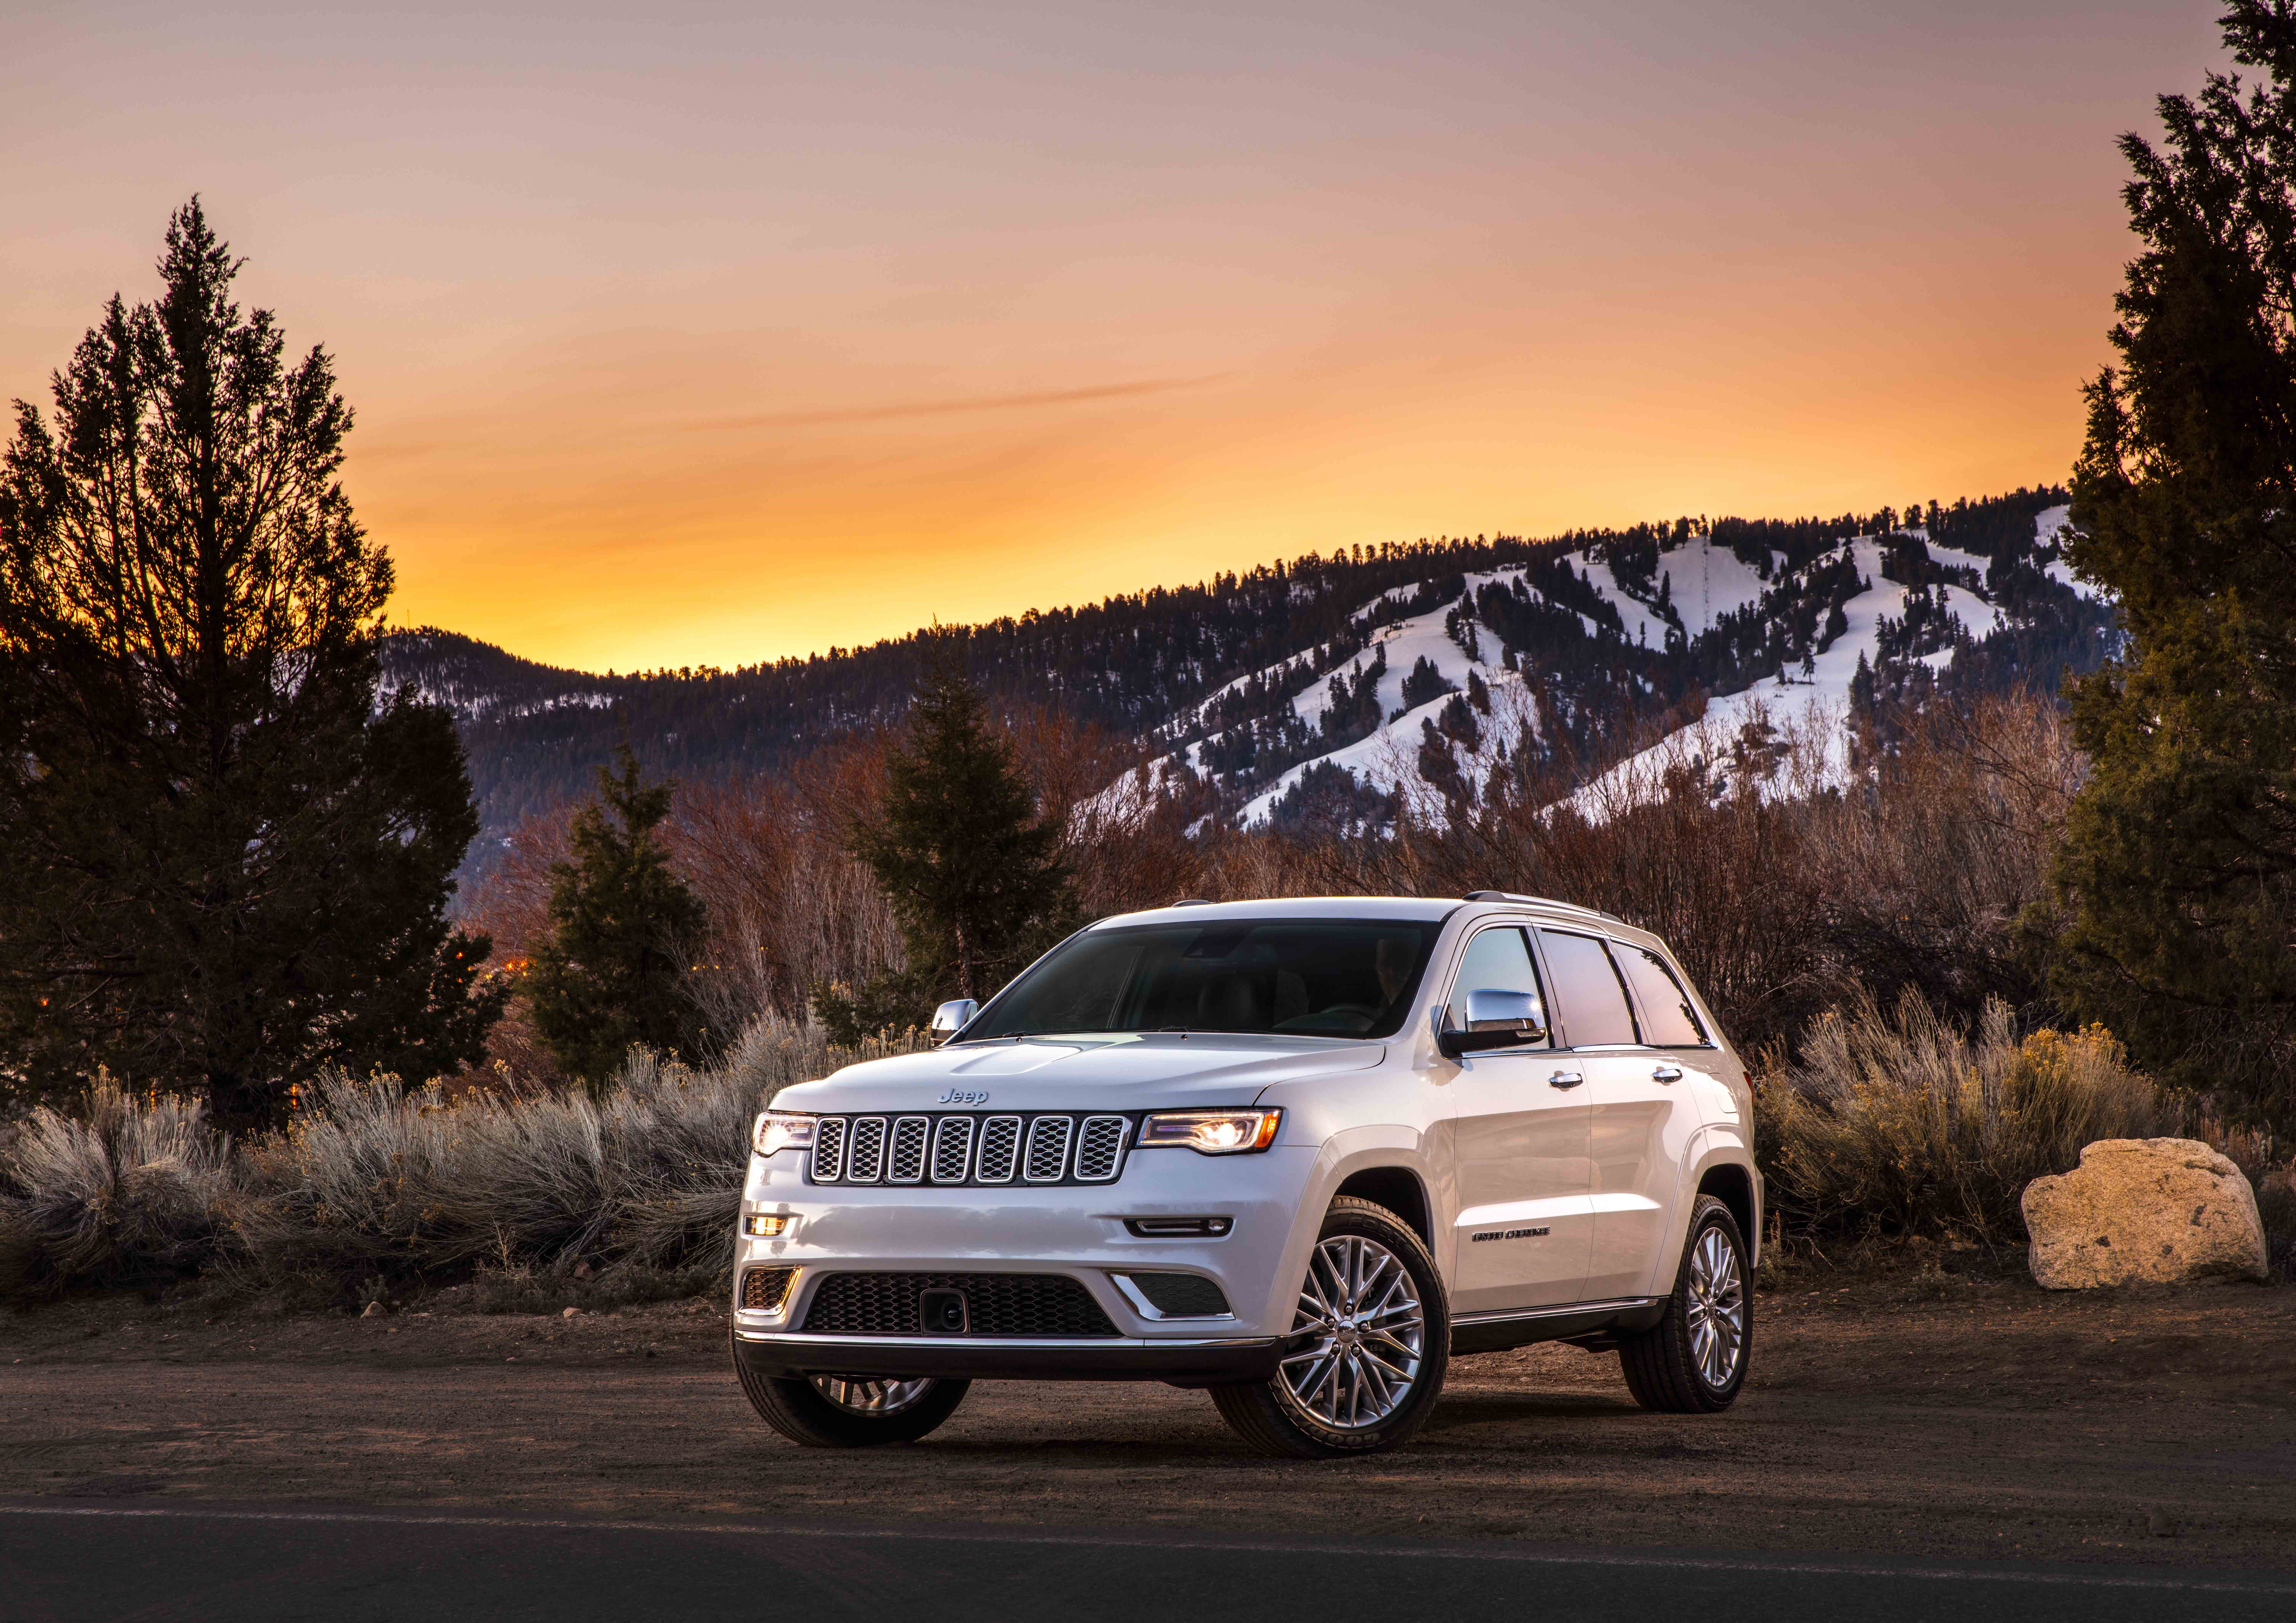 Jeep SUV or Chrysler Minivan available in Salem, OR at Roberson Motors